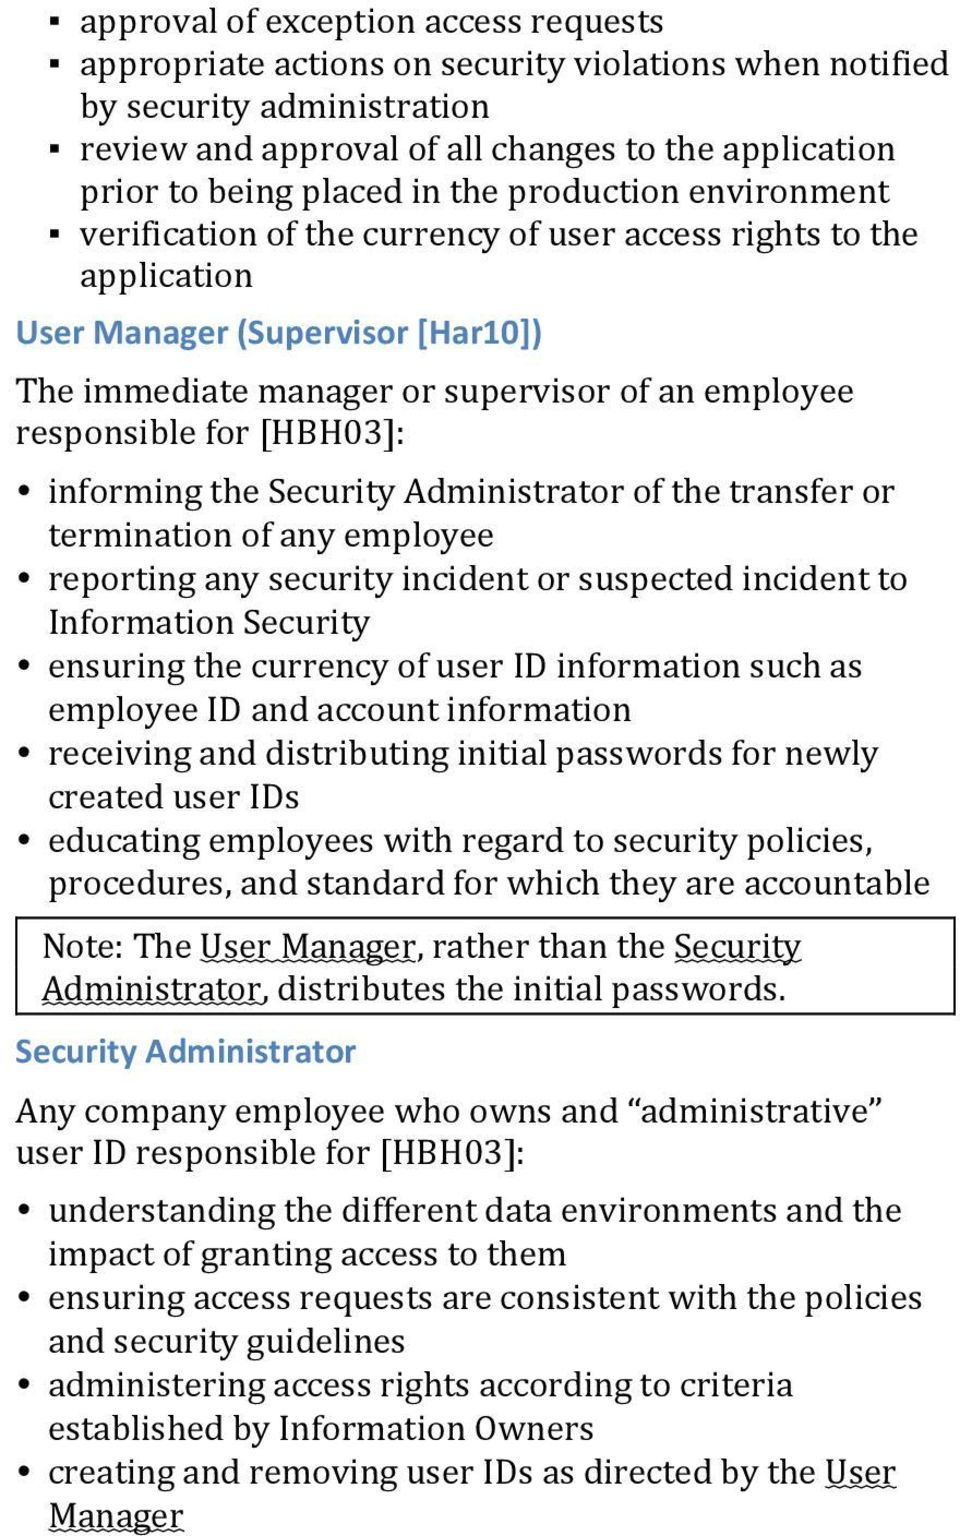 for [HBH03]: informing the Security Administrator of the transfer or termination of any employee reporting any security incident or suspected incident to Information Security ensuring the currency of